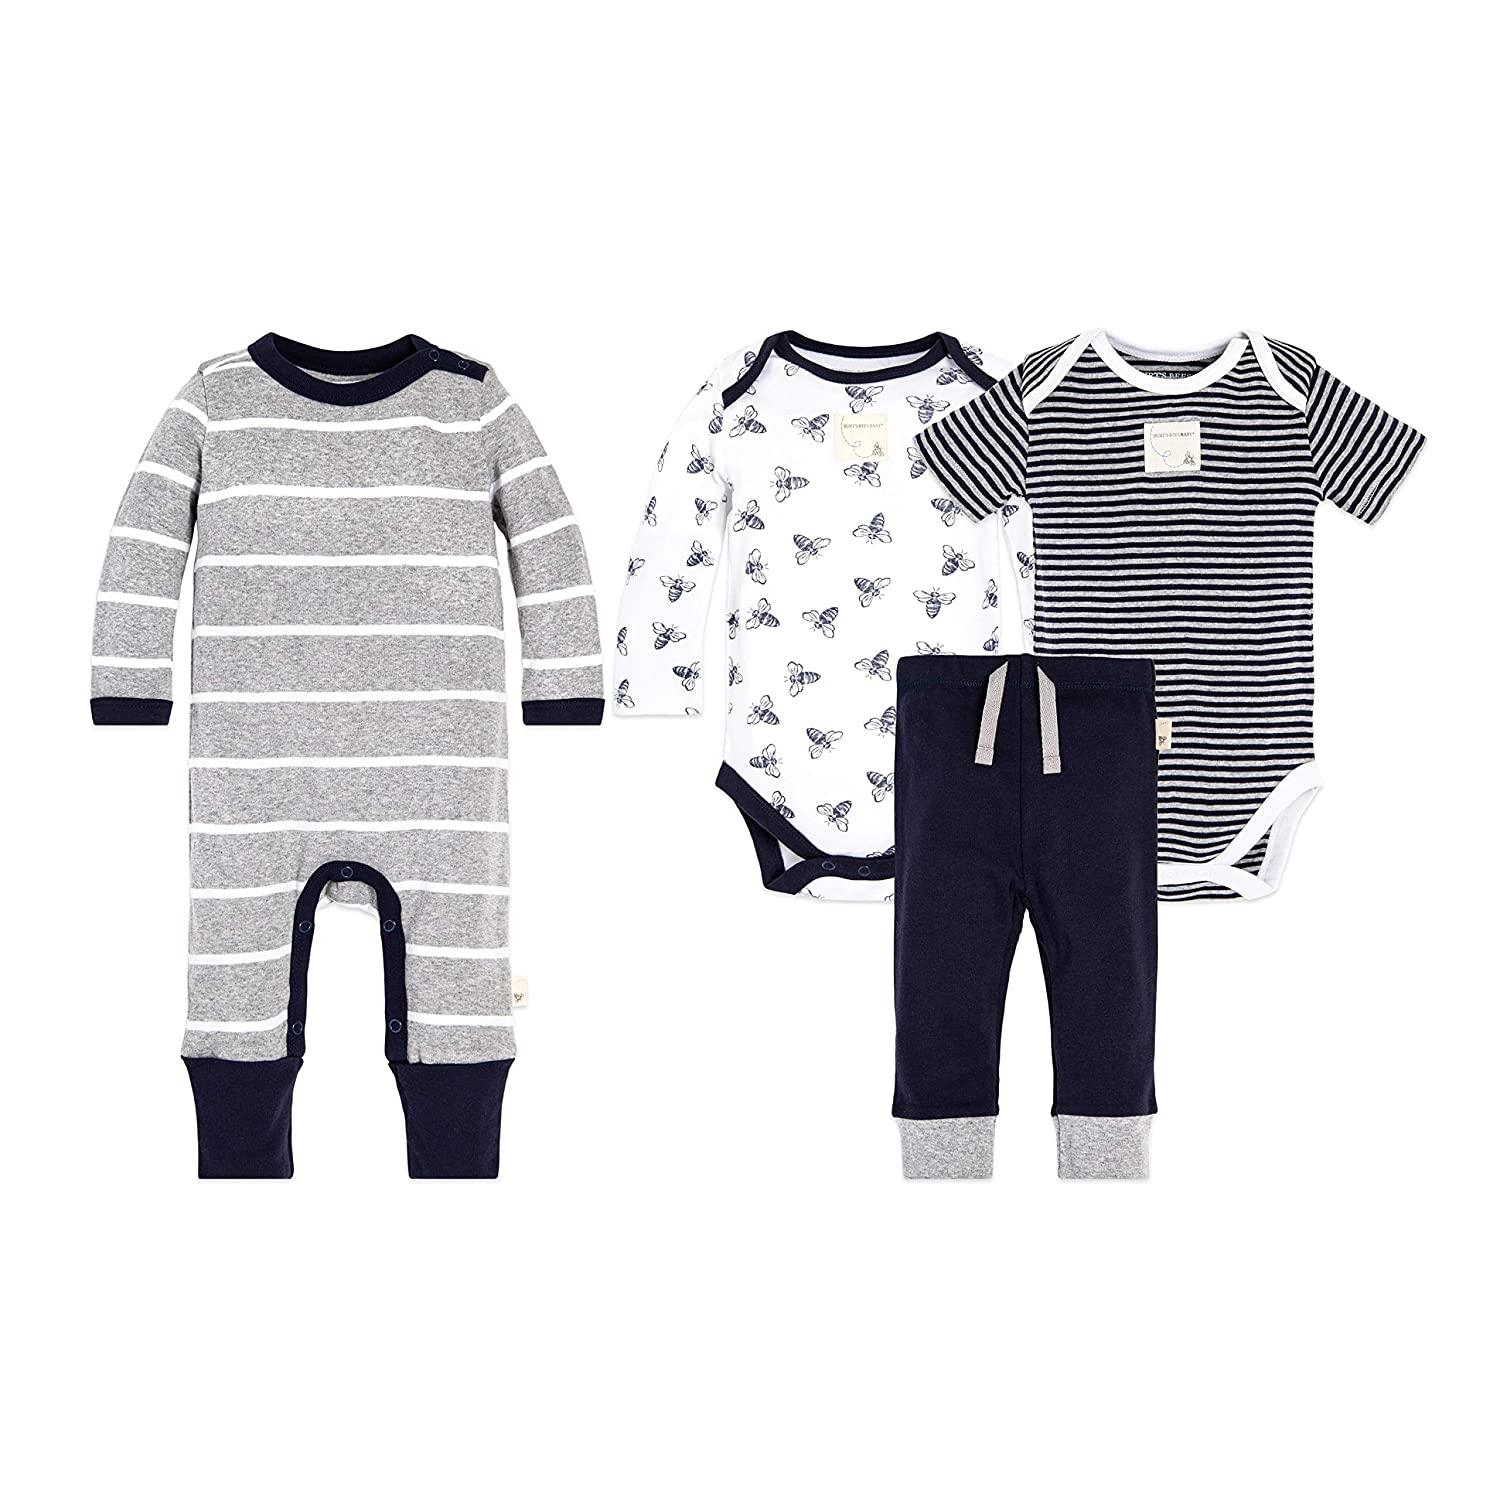 257df1a9e898 Burt s Bees Baby 4-Piece Clothing Sets - Includes  2 Bodysuits